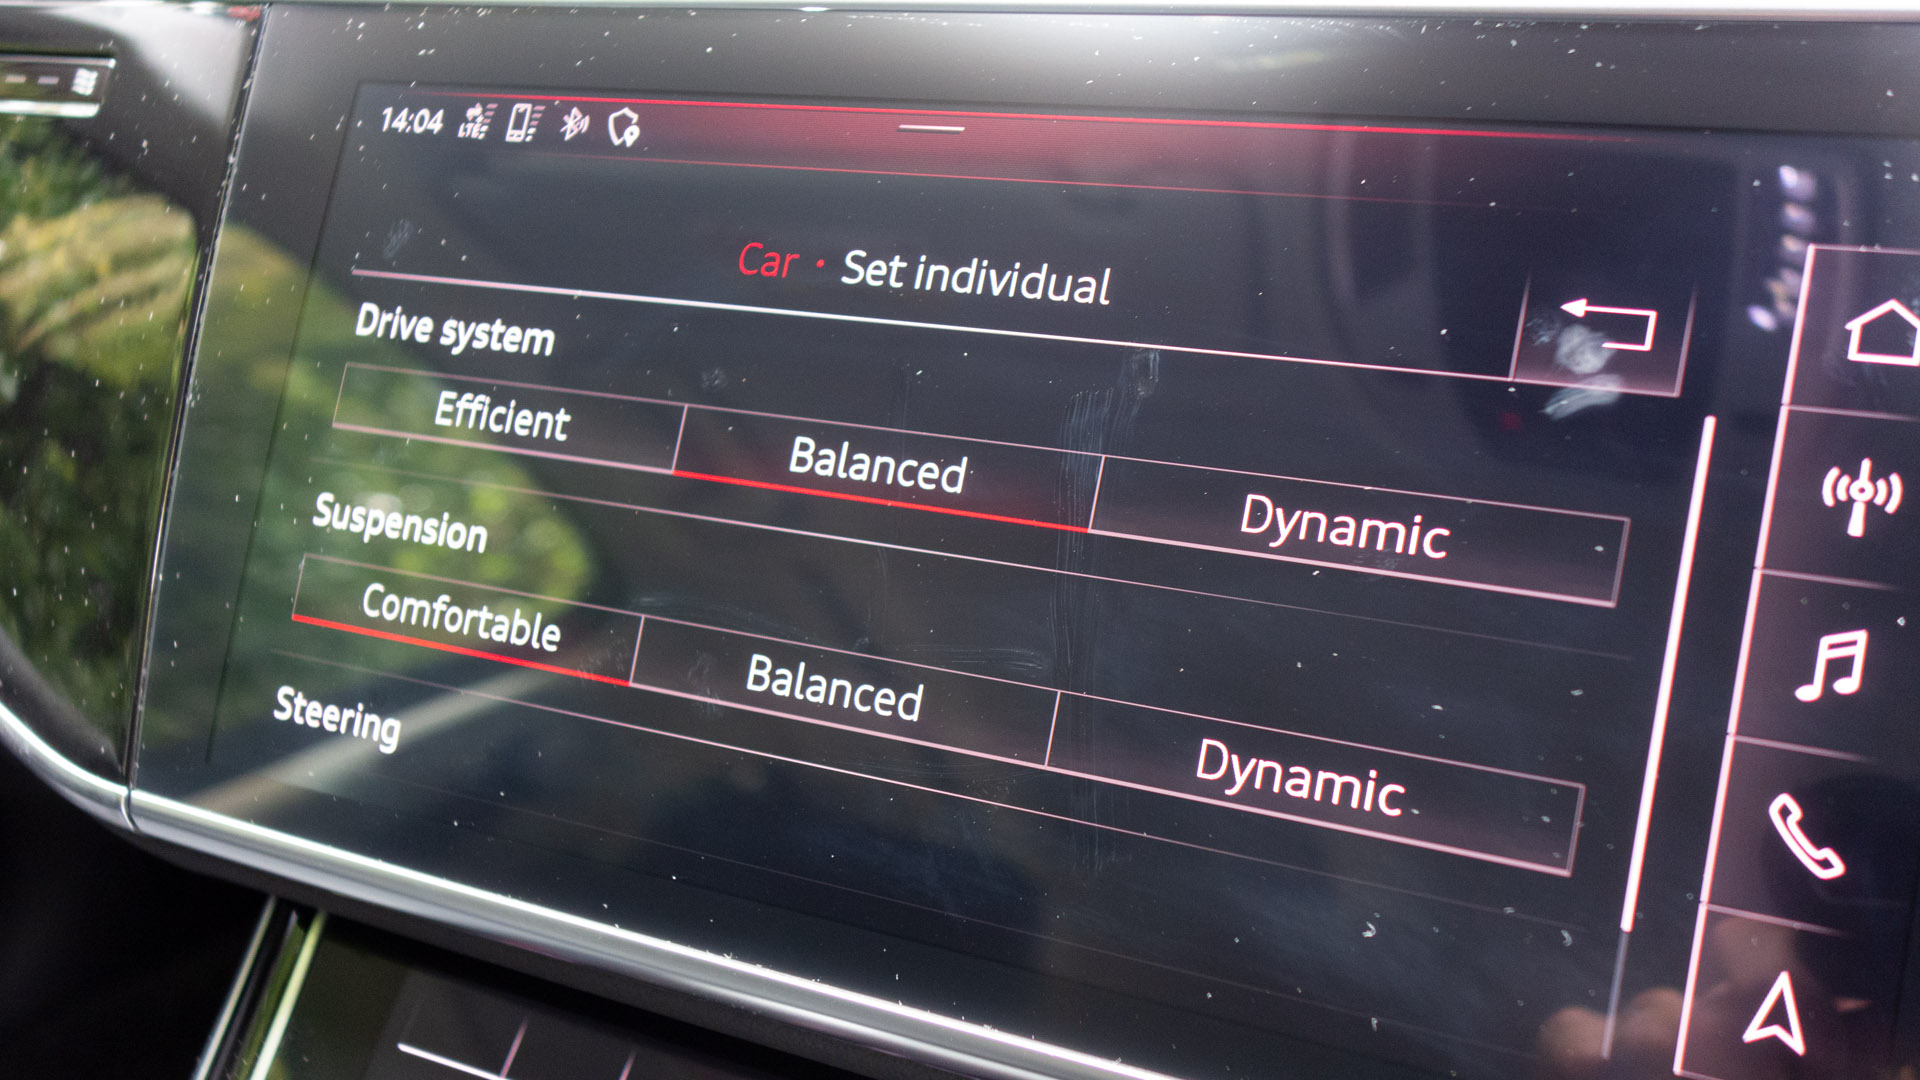 Audi A8 car settings drive